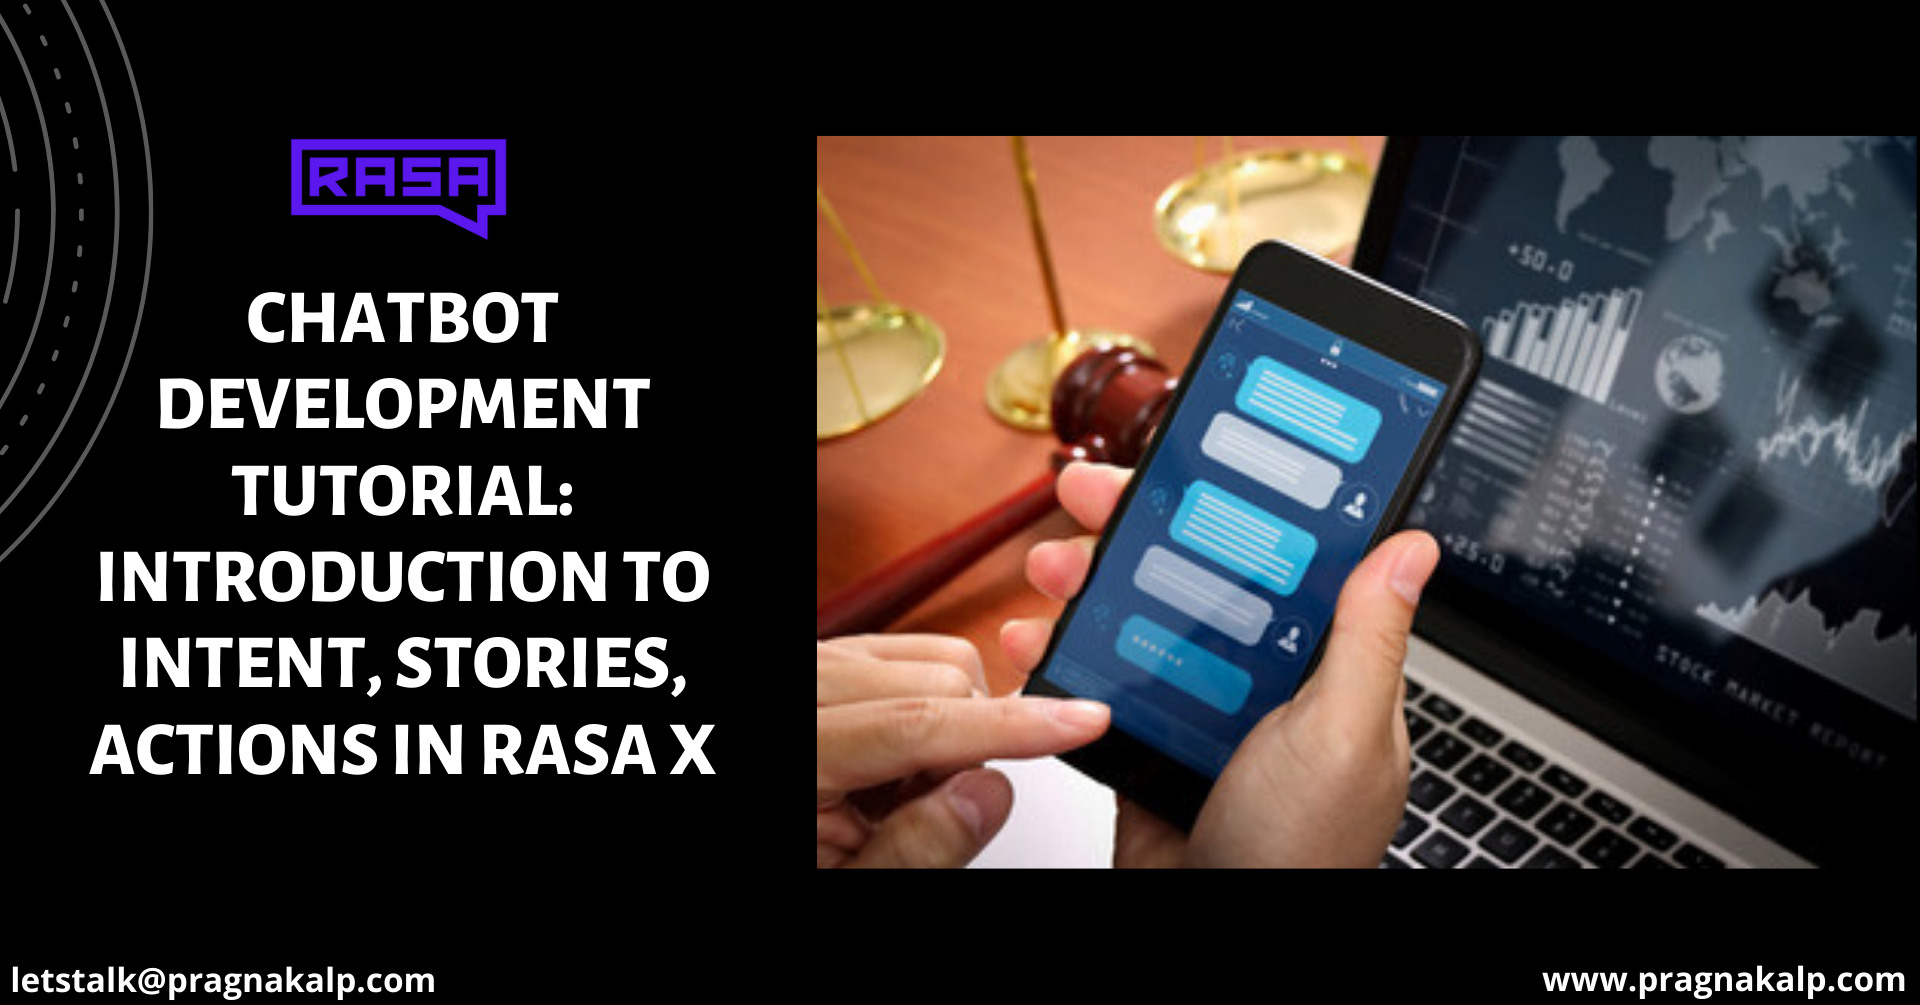 Chatbot development tutorial rasa x